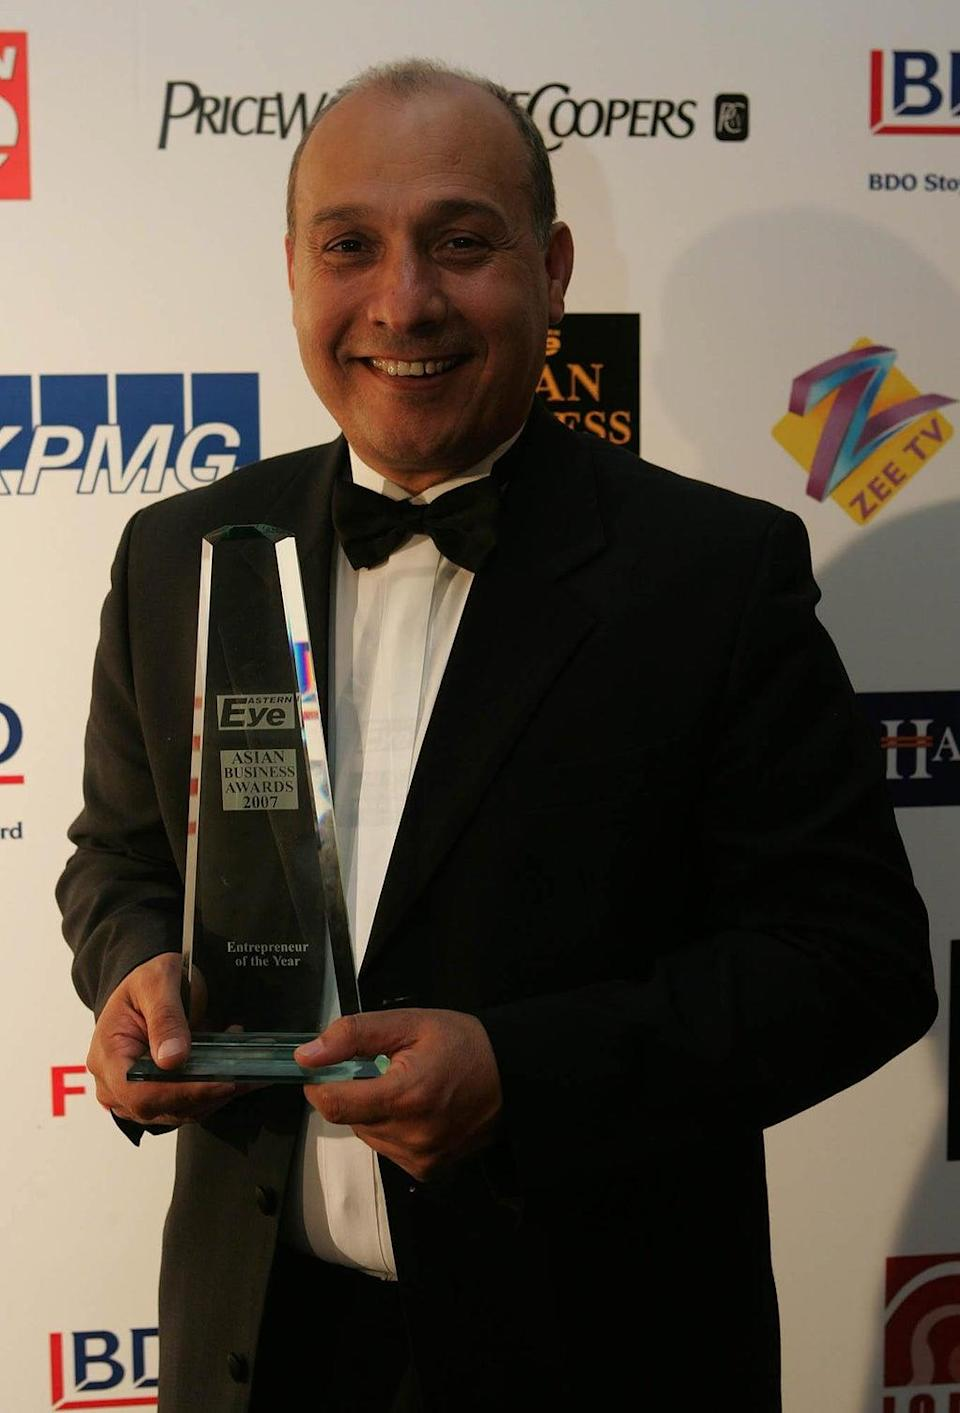 Surinder Arora is pictured winning KPMG Entrepreneur of the Year at the Asian Business Awards 2007 (Cathal McNaughton/PA) (PA Archive)